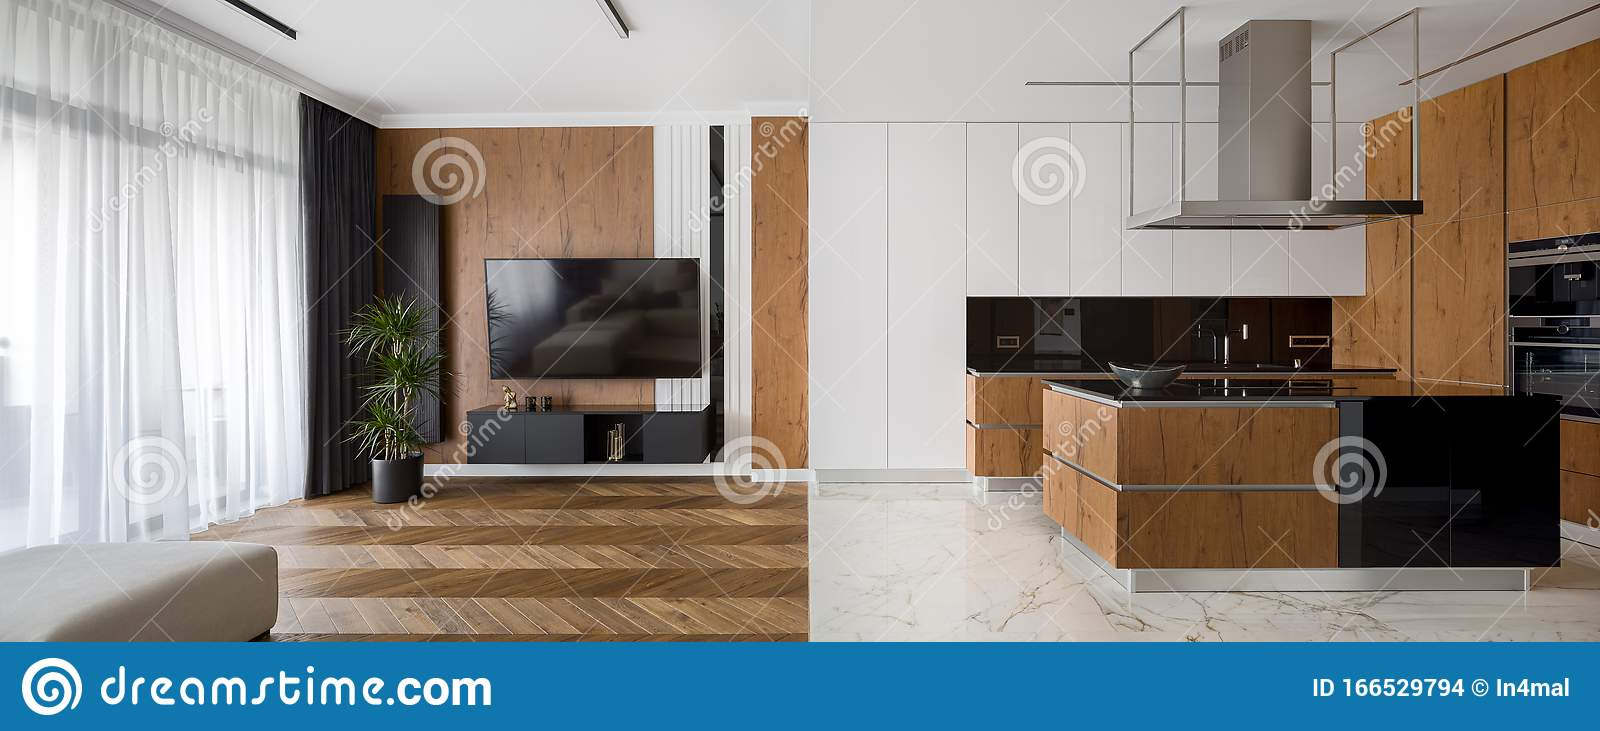 Luxury Kitchen And Living Room Stock Photo Image Of Kitchen Marble 166529794